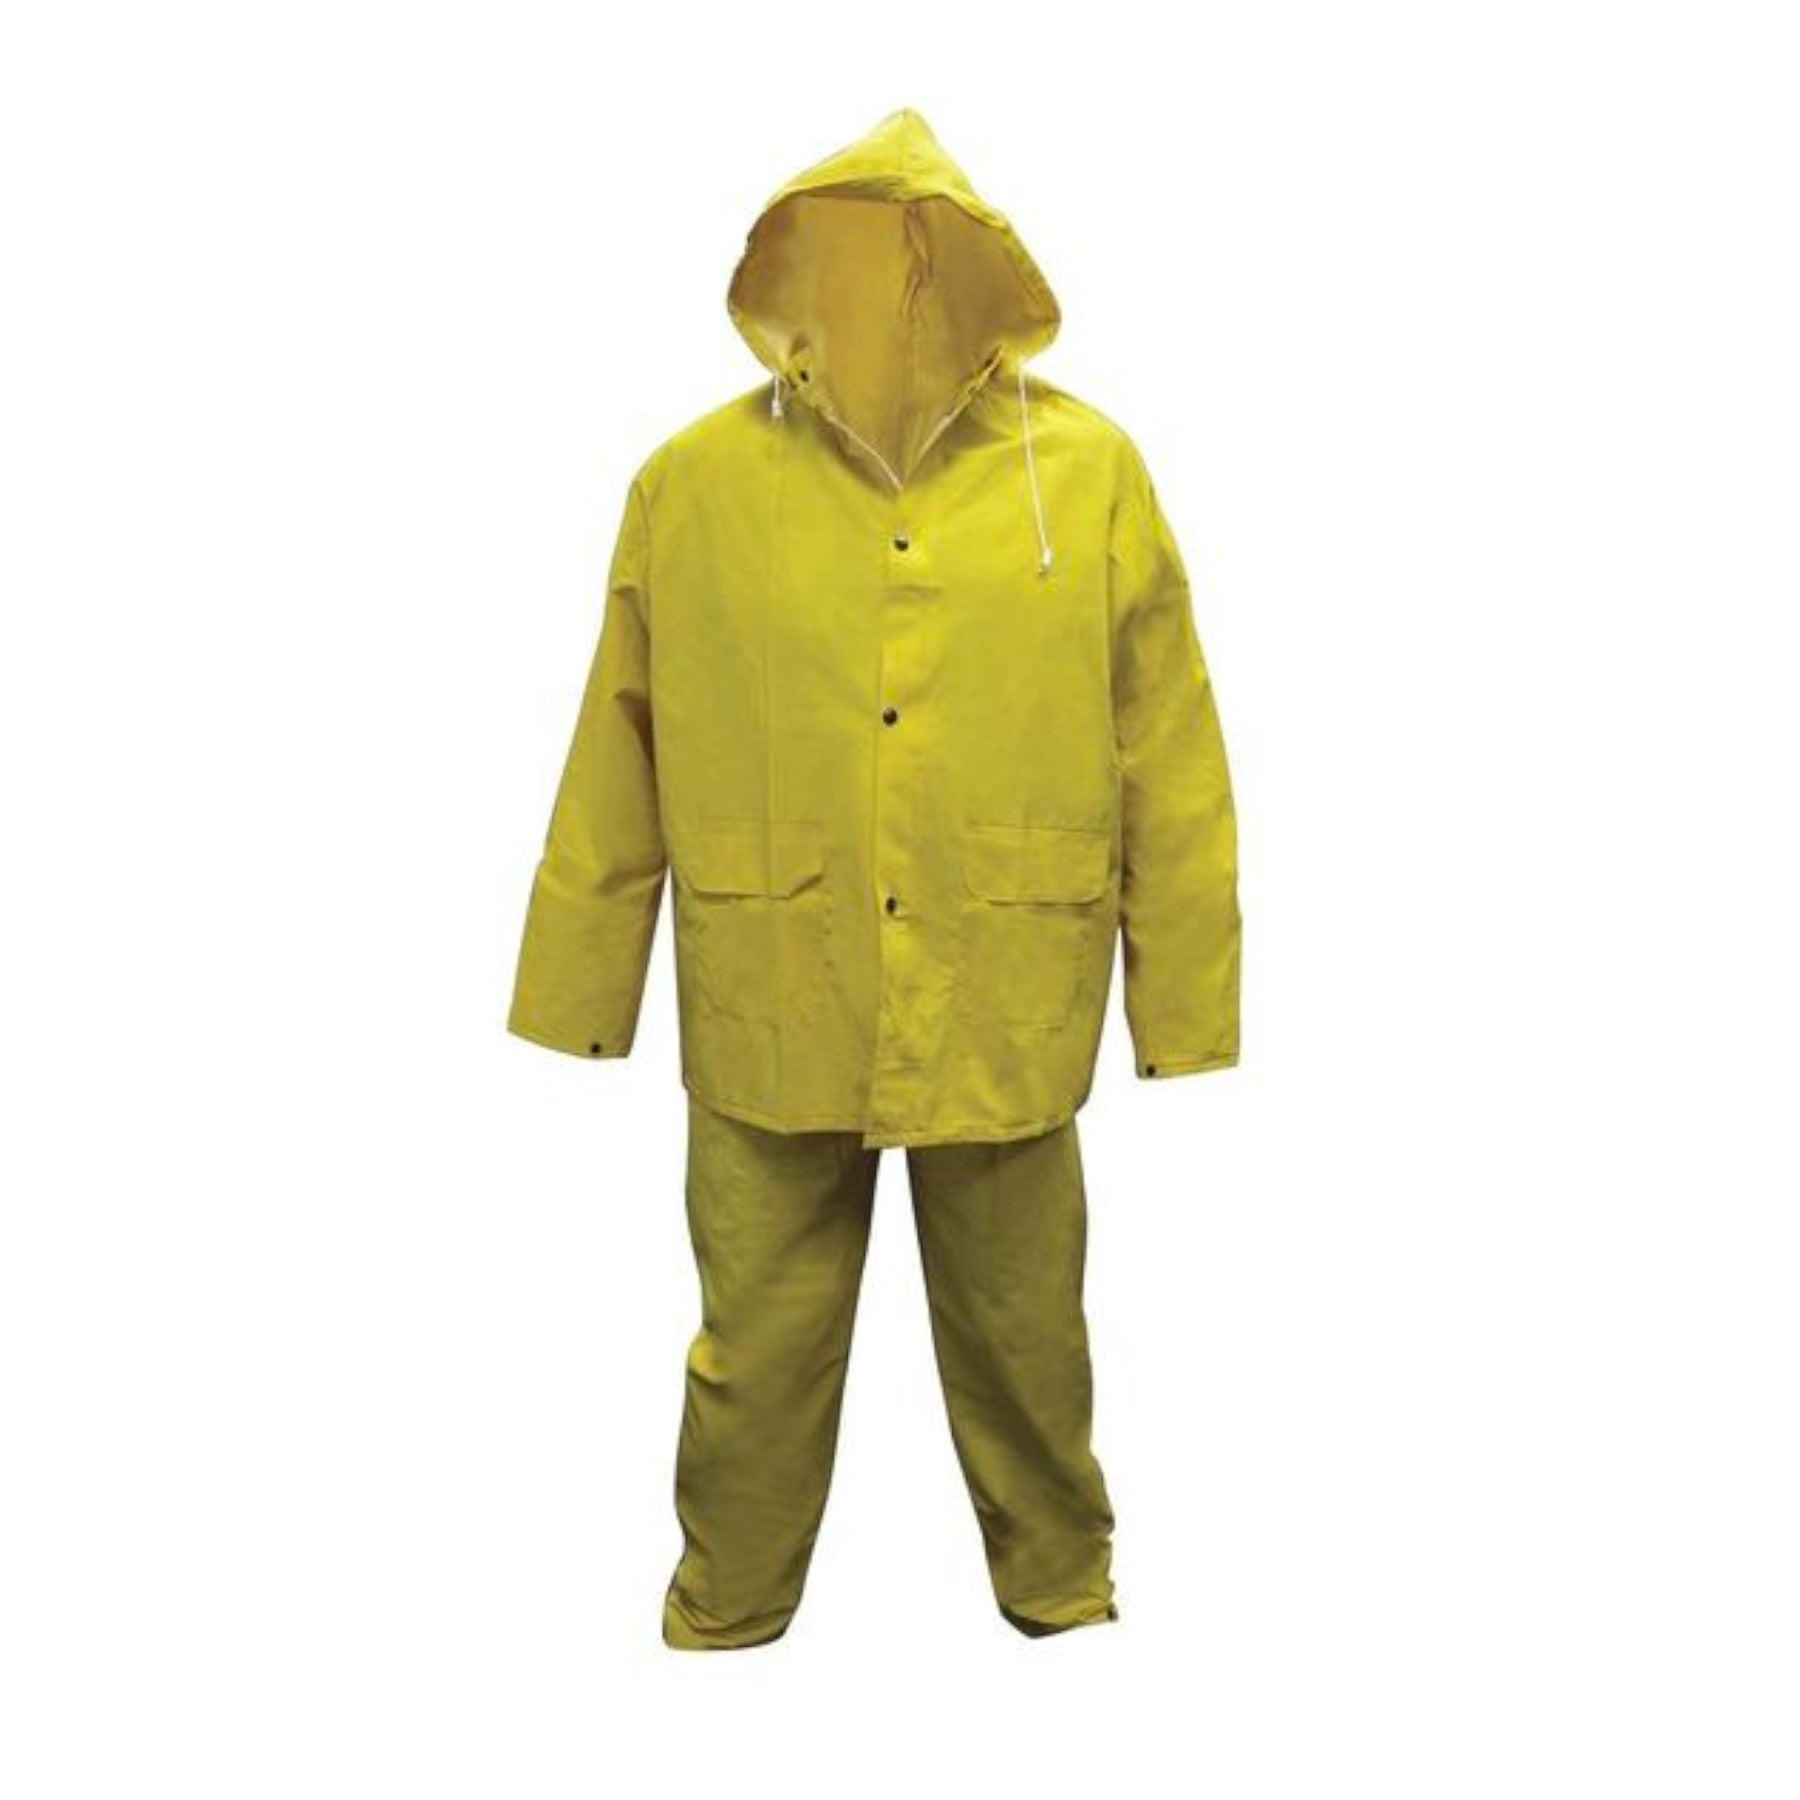 Rain Suit - Heavy Duty